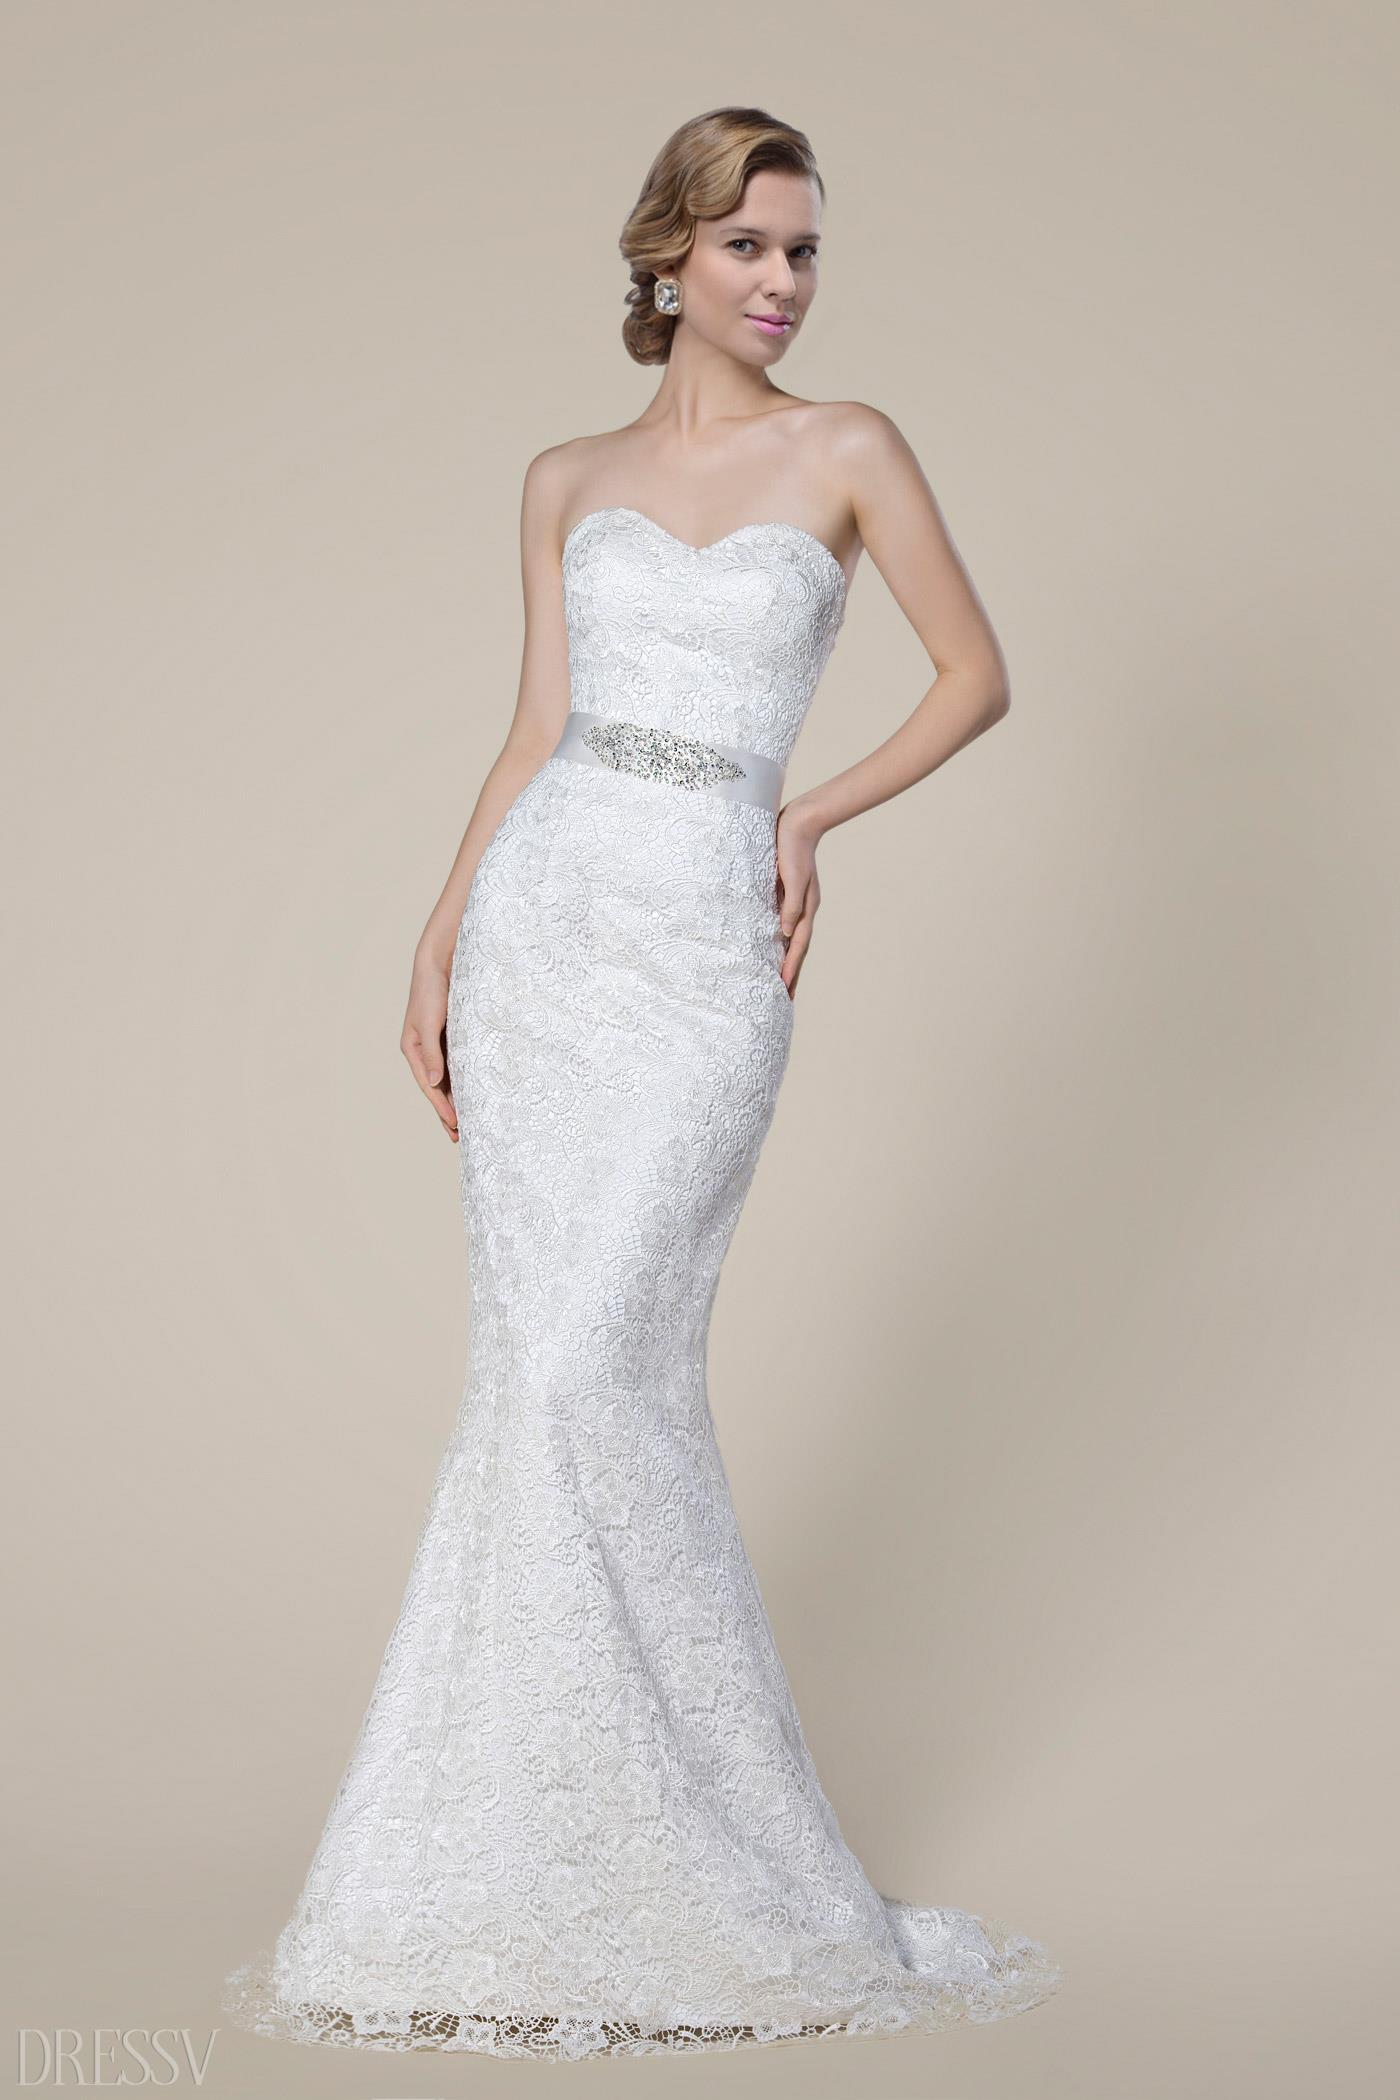 Are mermaid wedding dresses a trend fashion tag blog for Image of wedding dresses